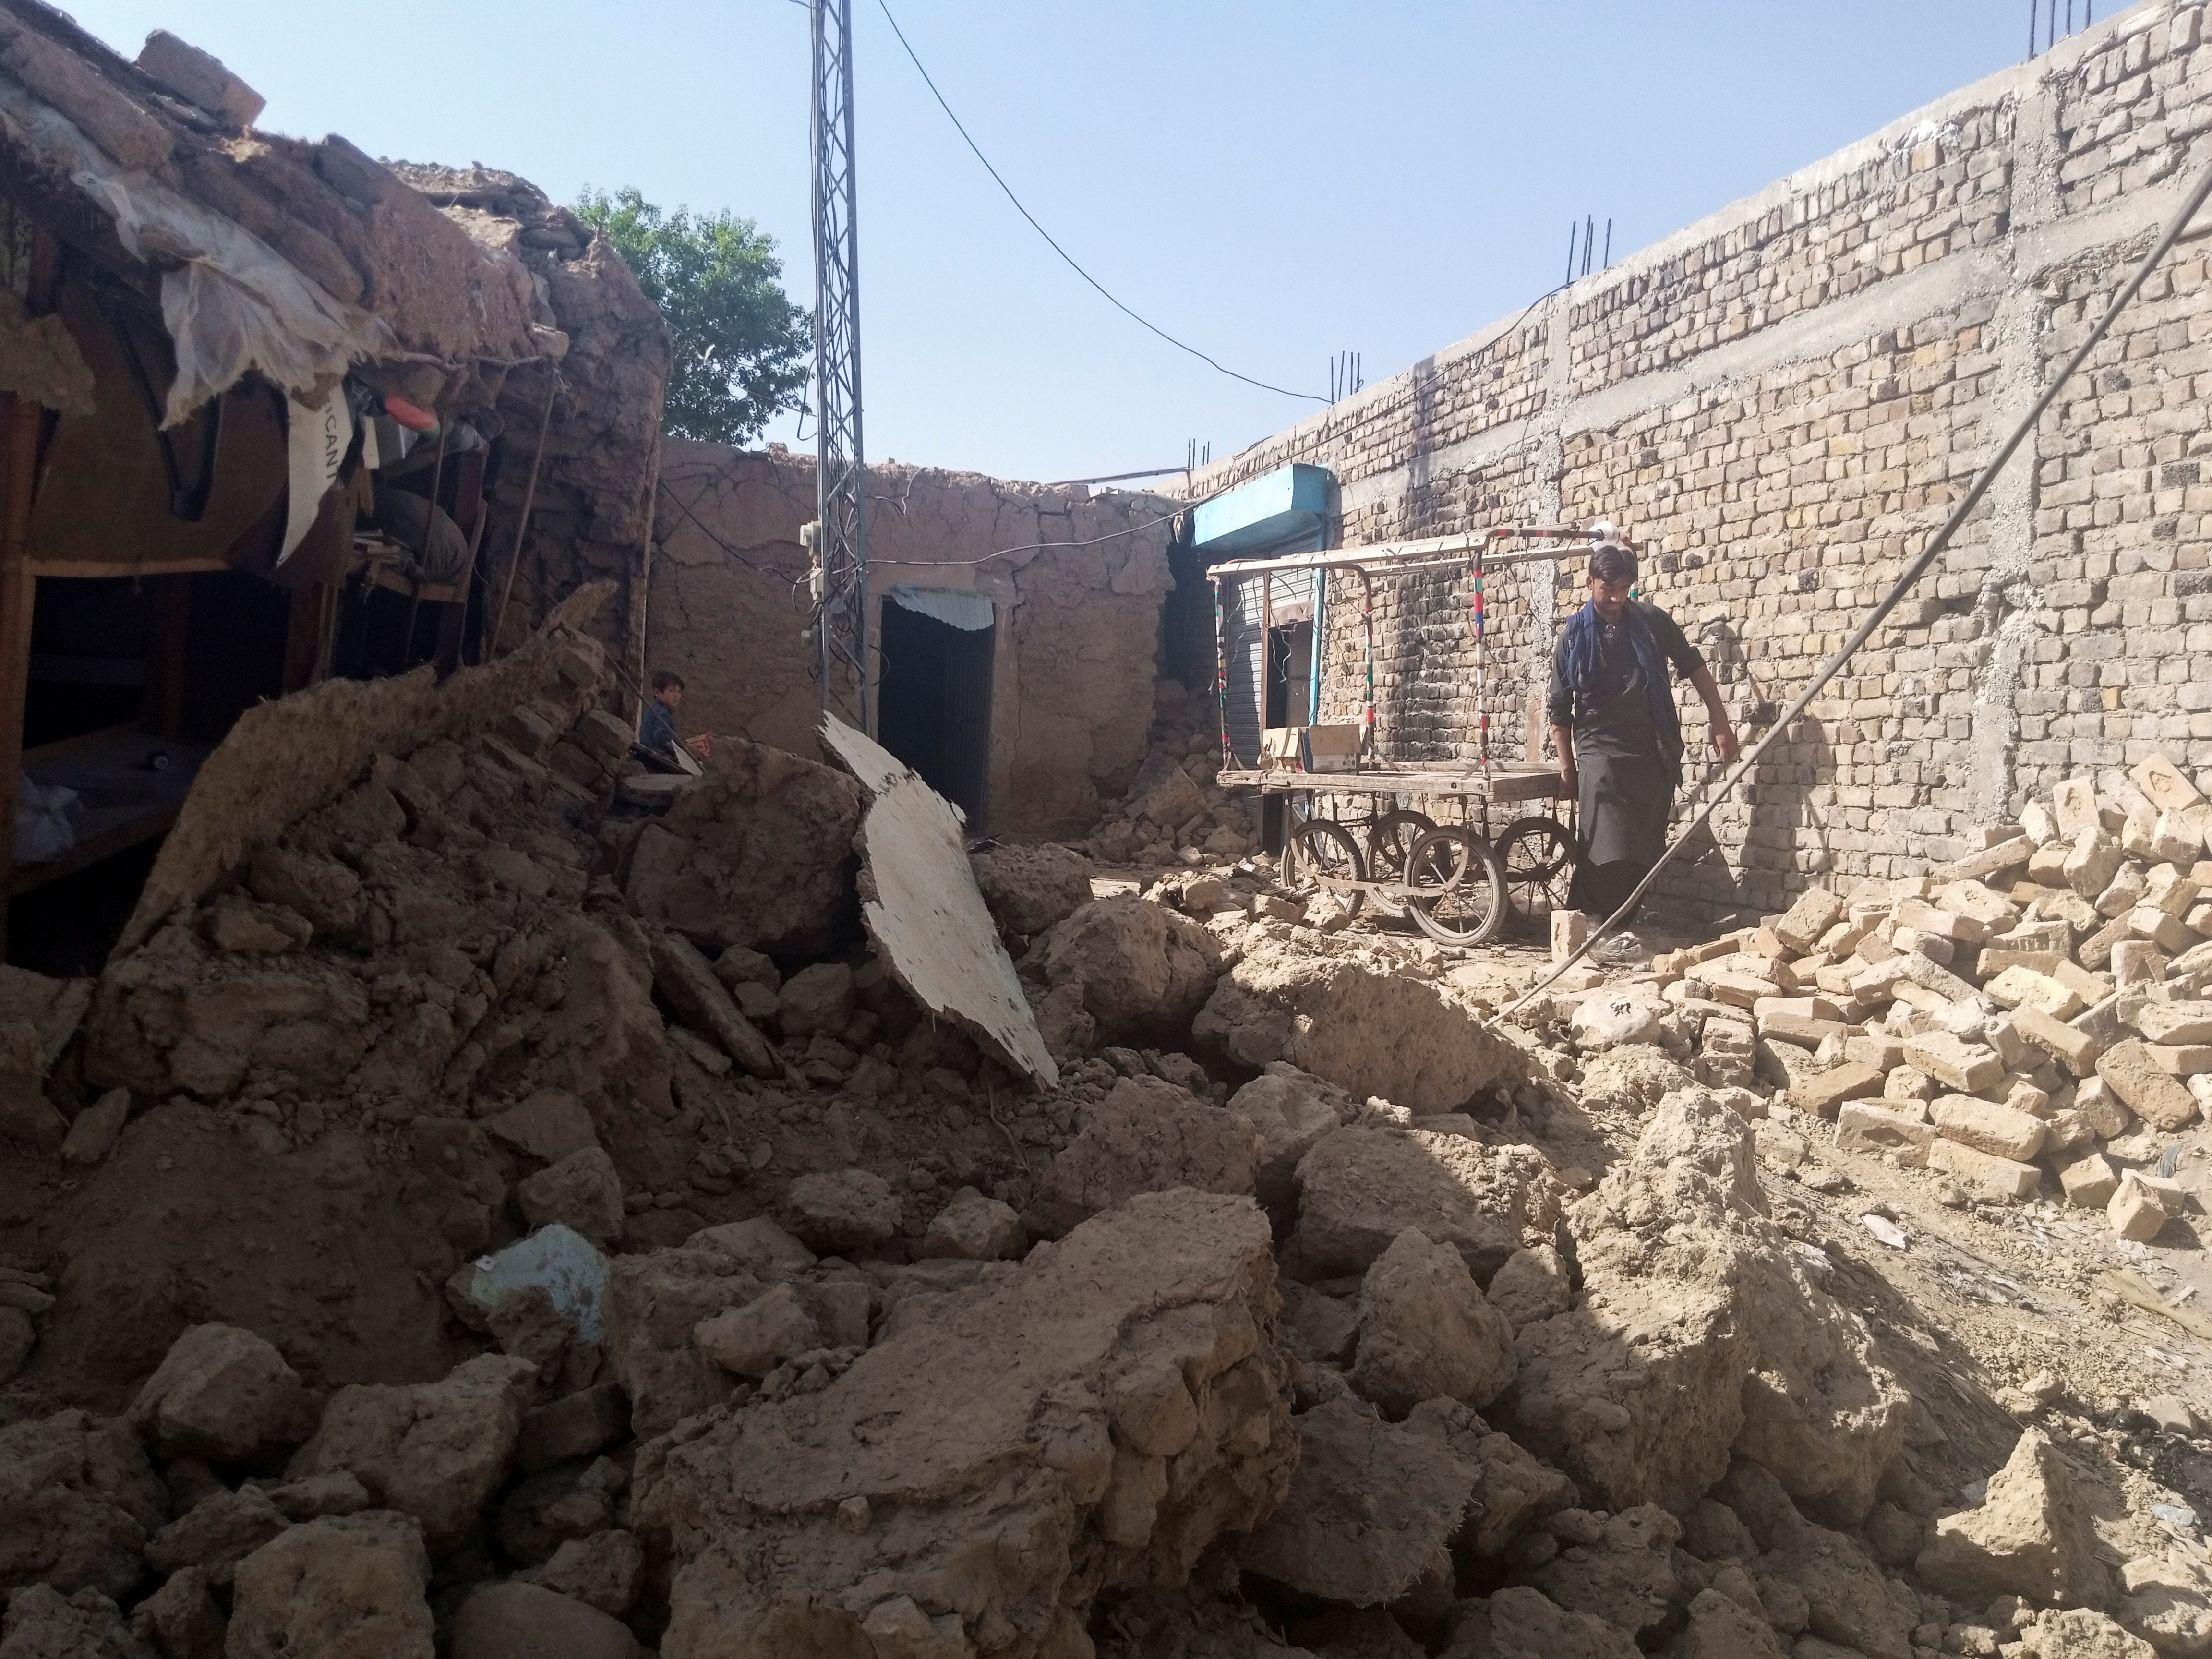 A man removes his pushcart from the rubble of a damaged house following an earthquake in Harnai, Balochistan, Pakistan, October 7, 2021. REUTERS/Naseer Ahmed